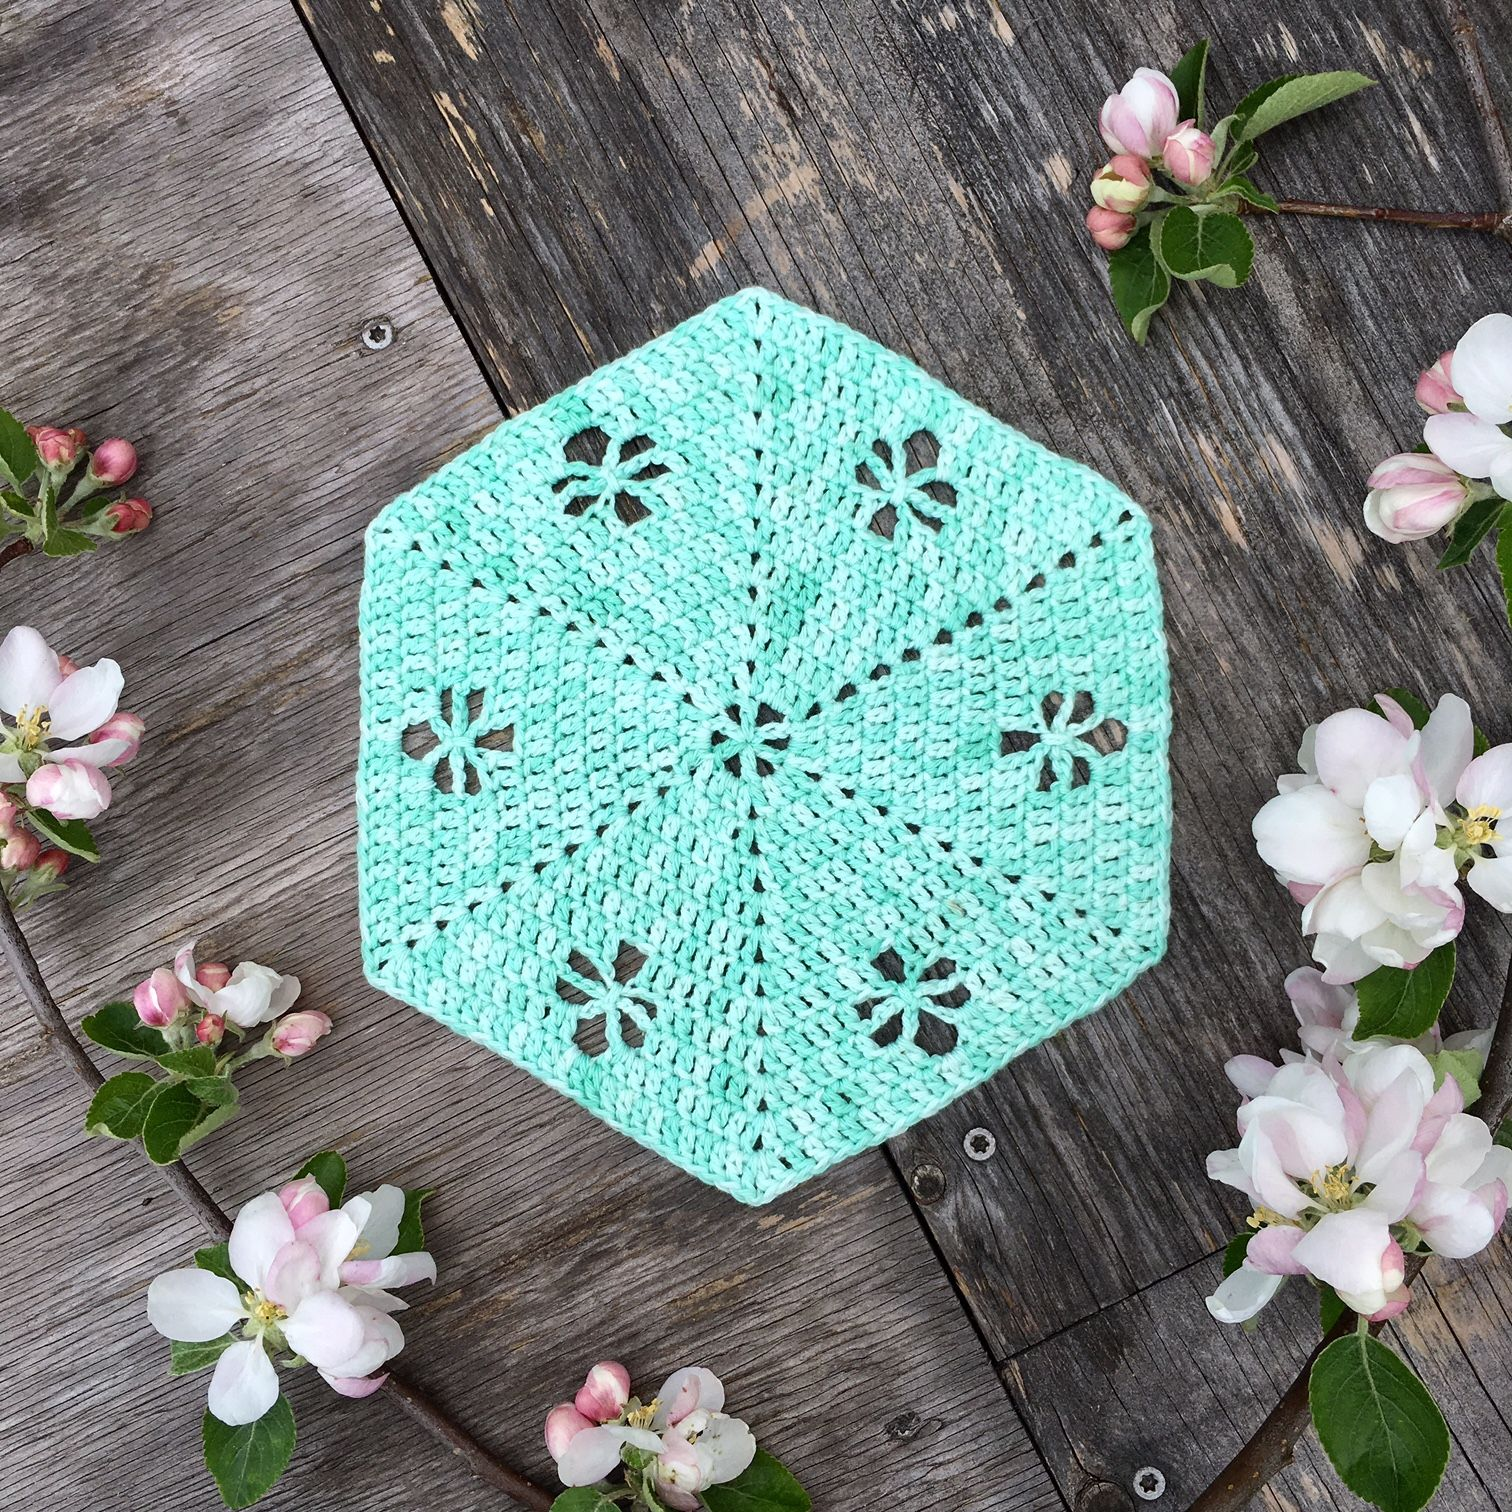 The Spring Garden Hexie Is Here A Large Crochet Hexagon With Pretty